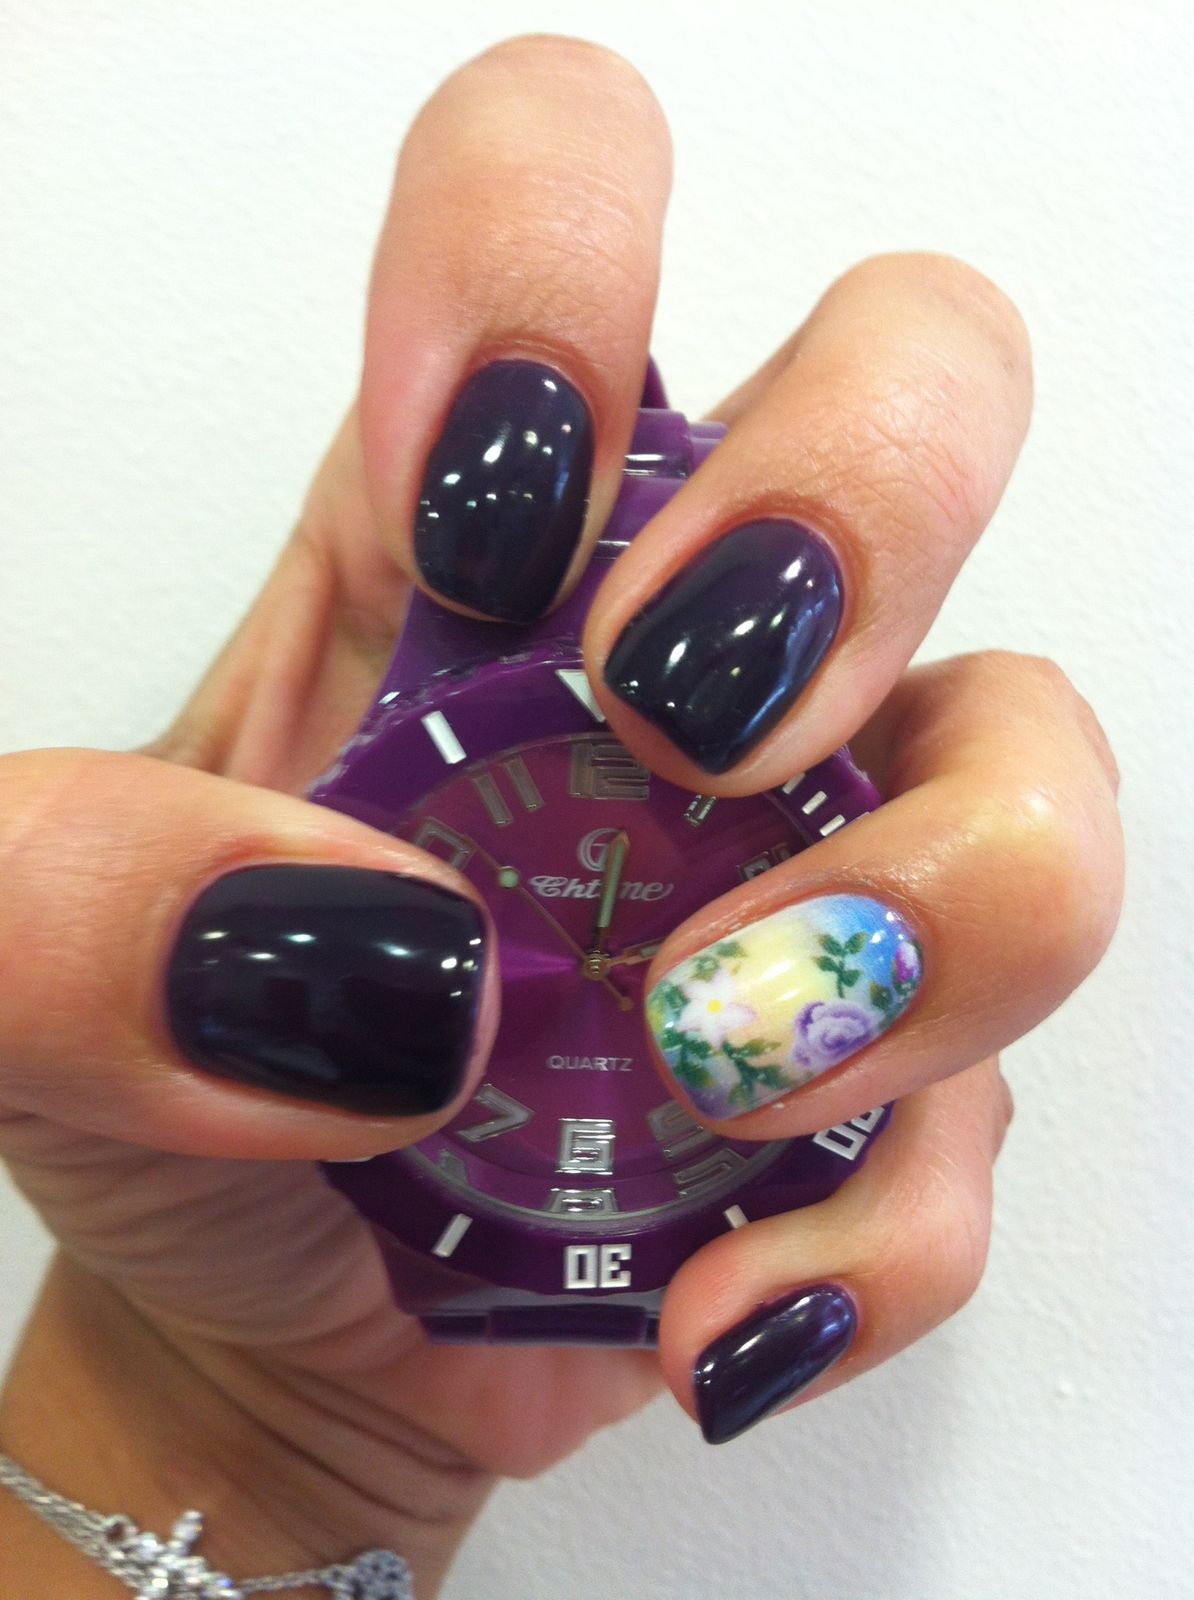 Nails pro beautify themselves with sweet nails album art pro nail access nails prinsesfo Images